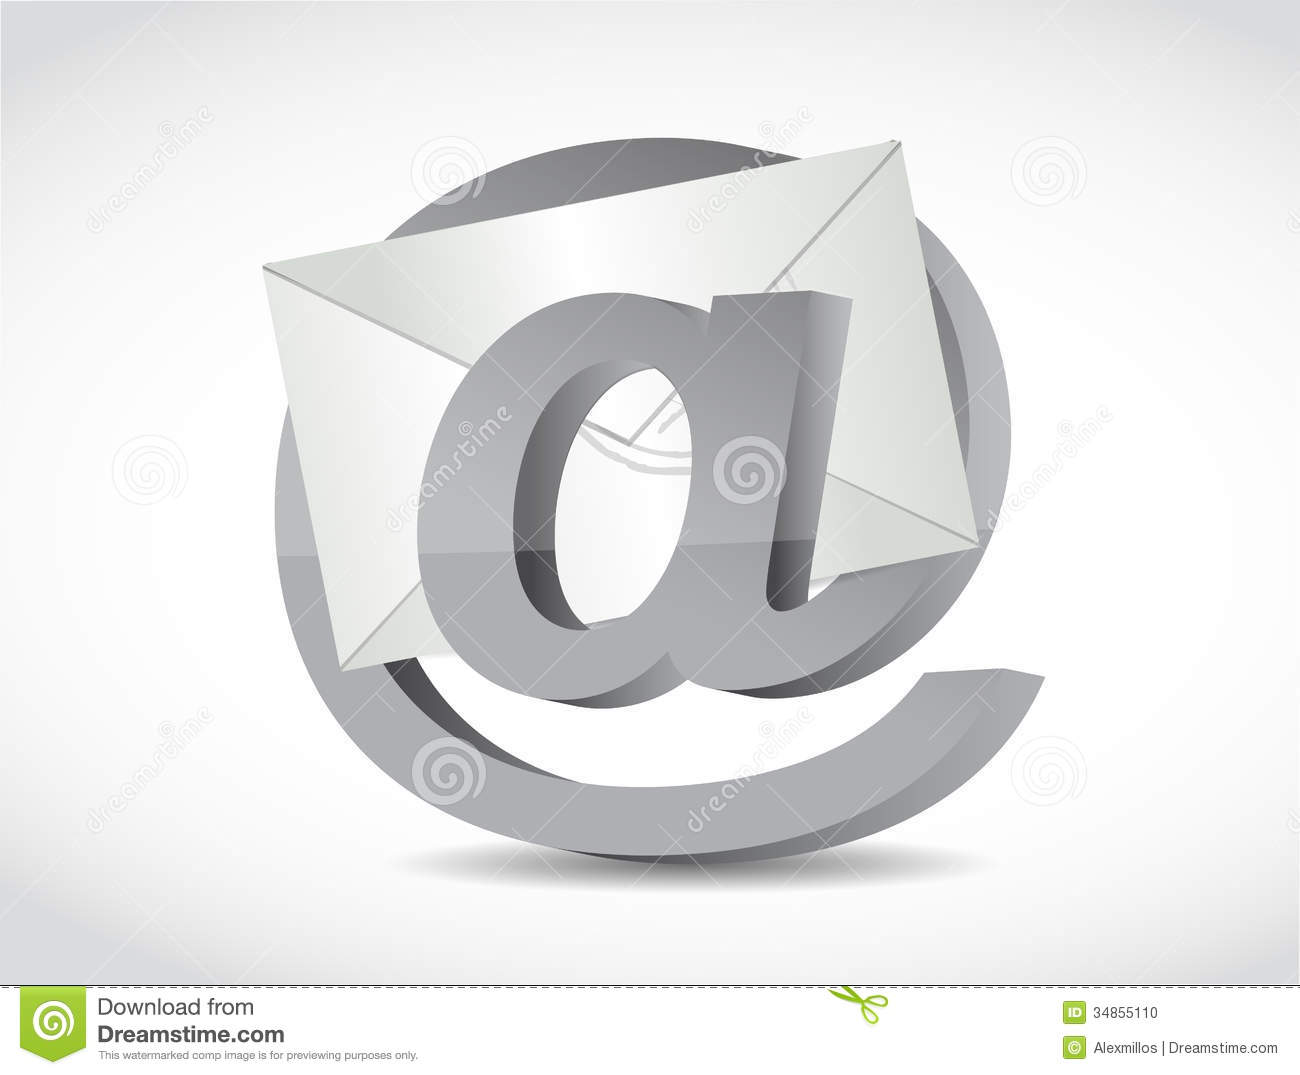 At internet symbol and email illustration